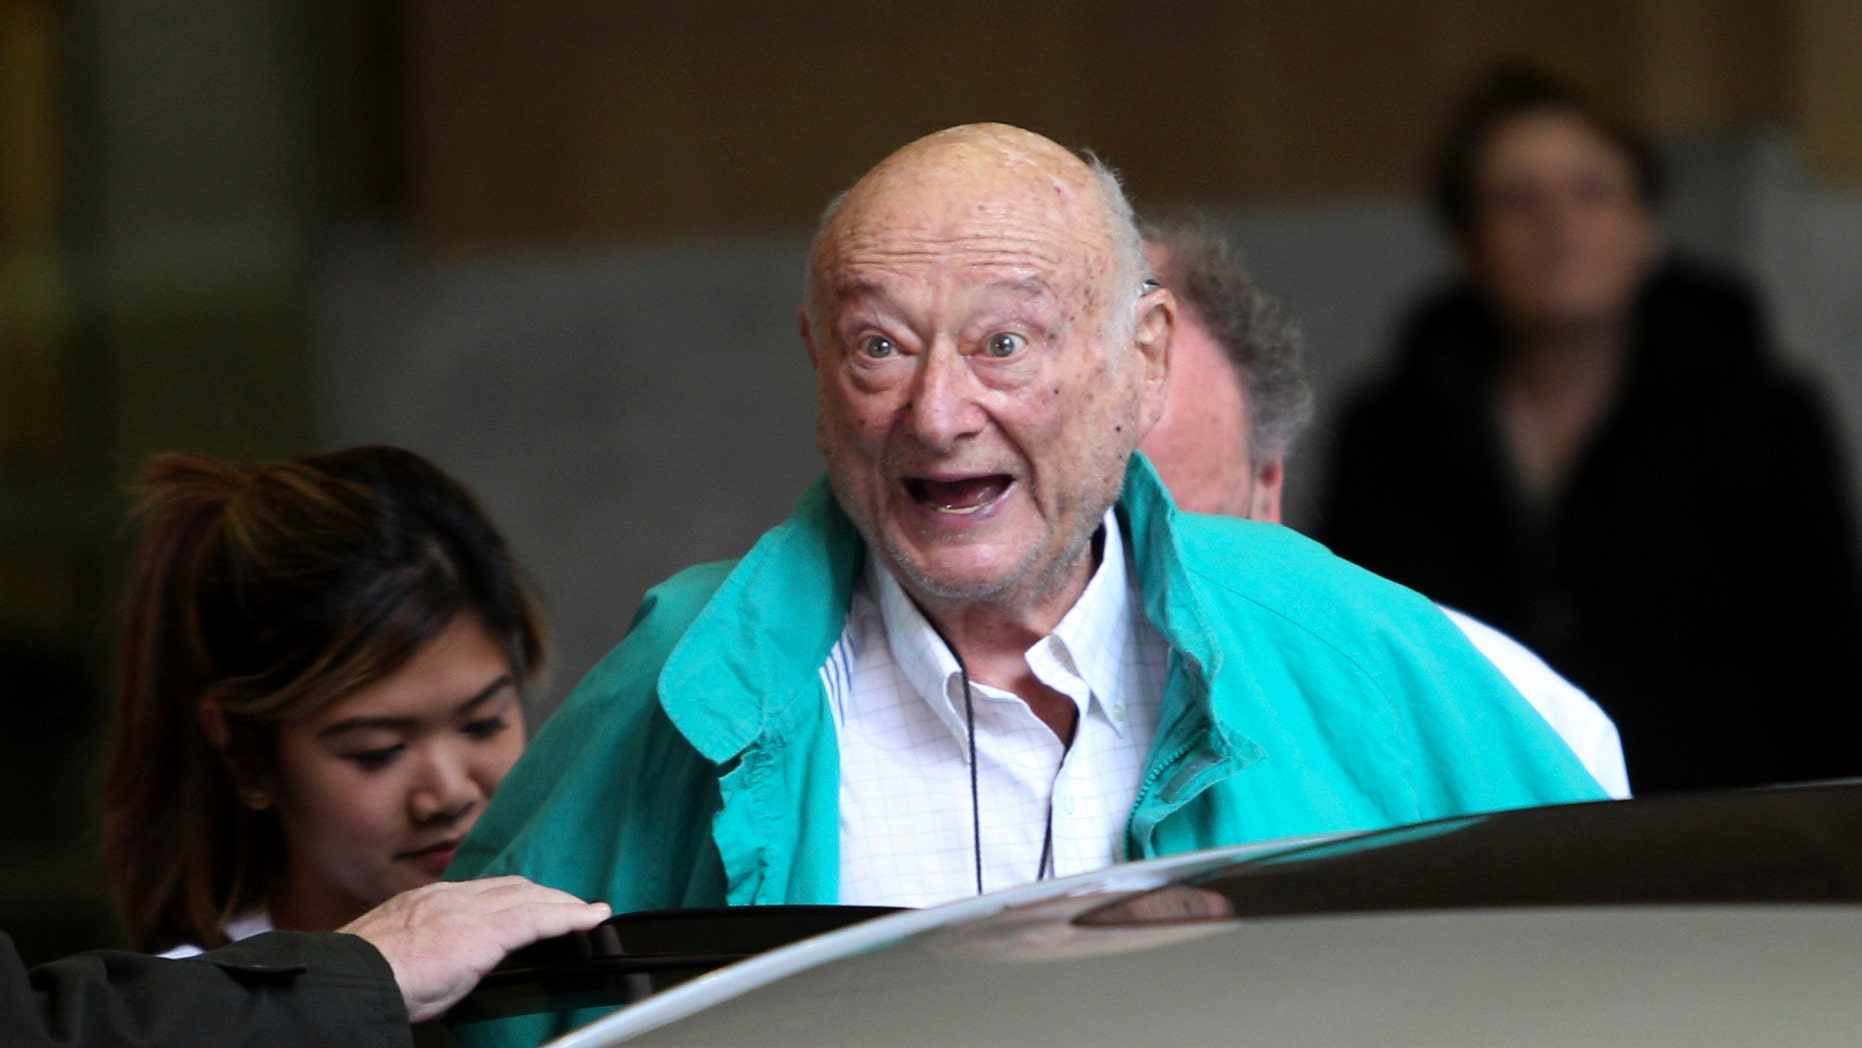 Dec. 10, 2012: In this file photo, former New York City Mayor Ed Koch says good-bye to reporters as he gets in his car after being released from the hospital in New York.